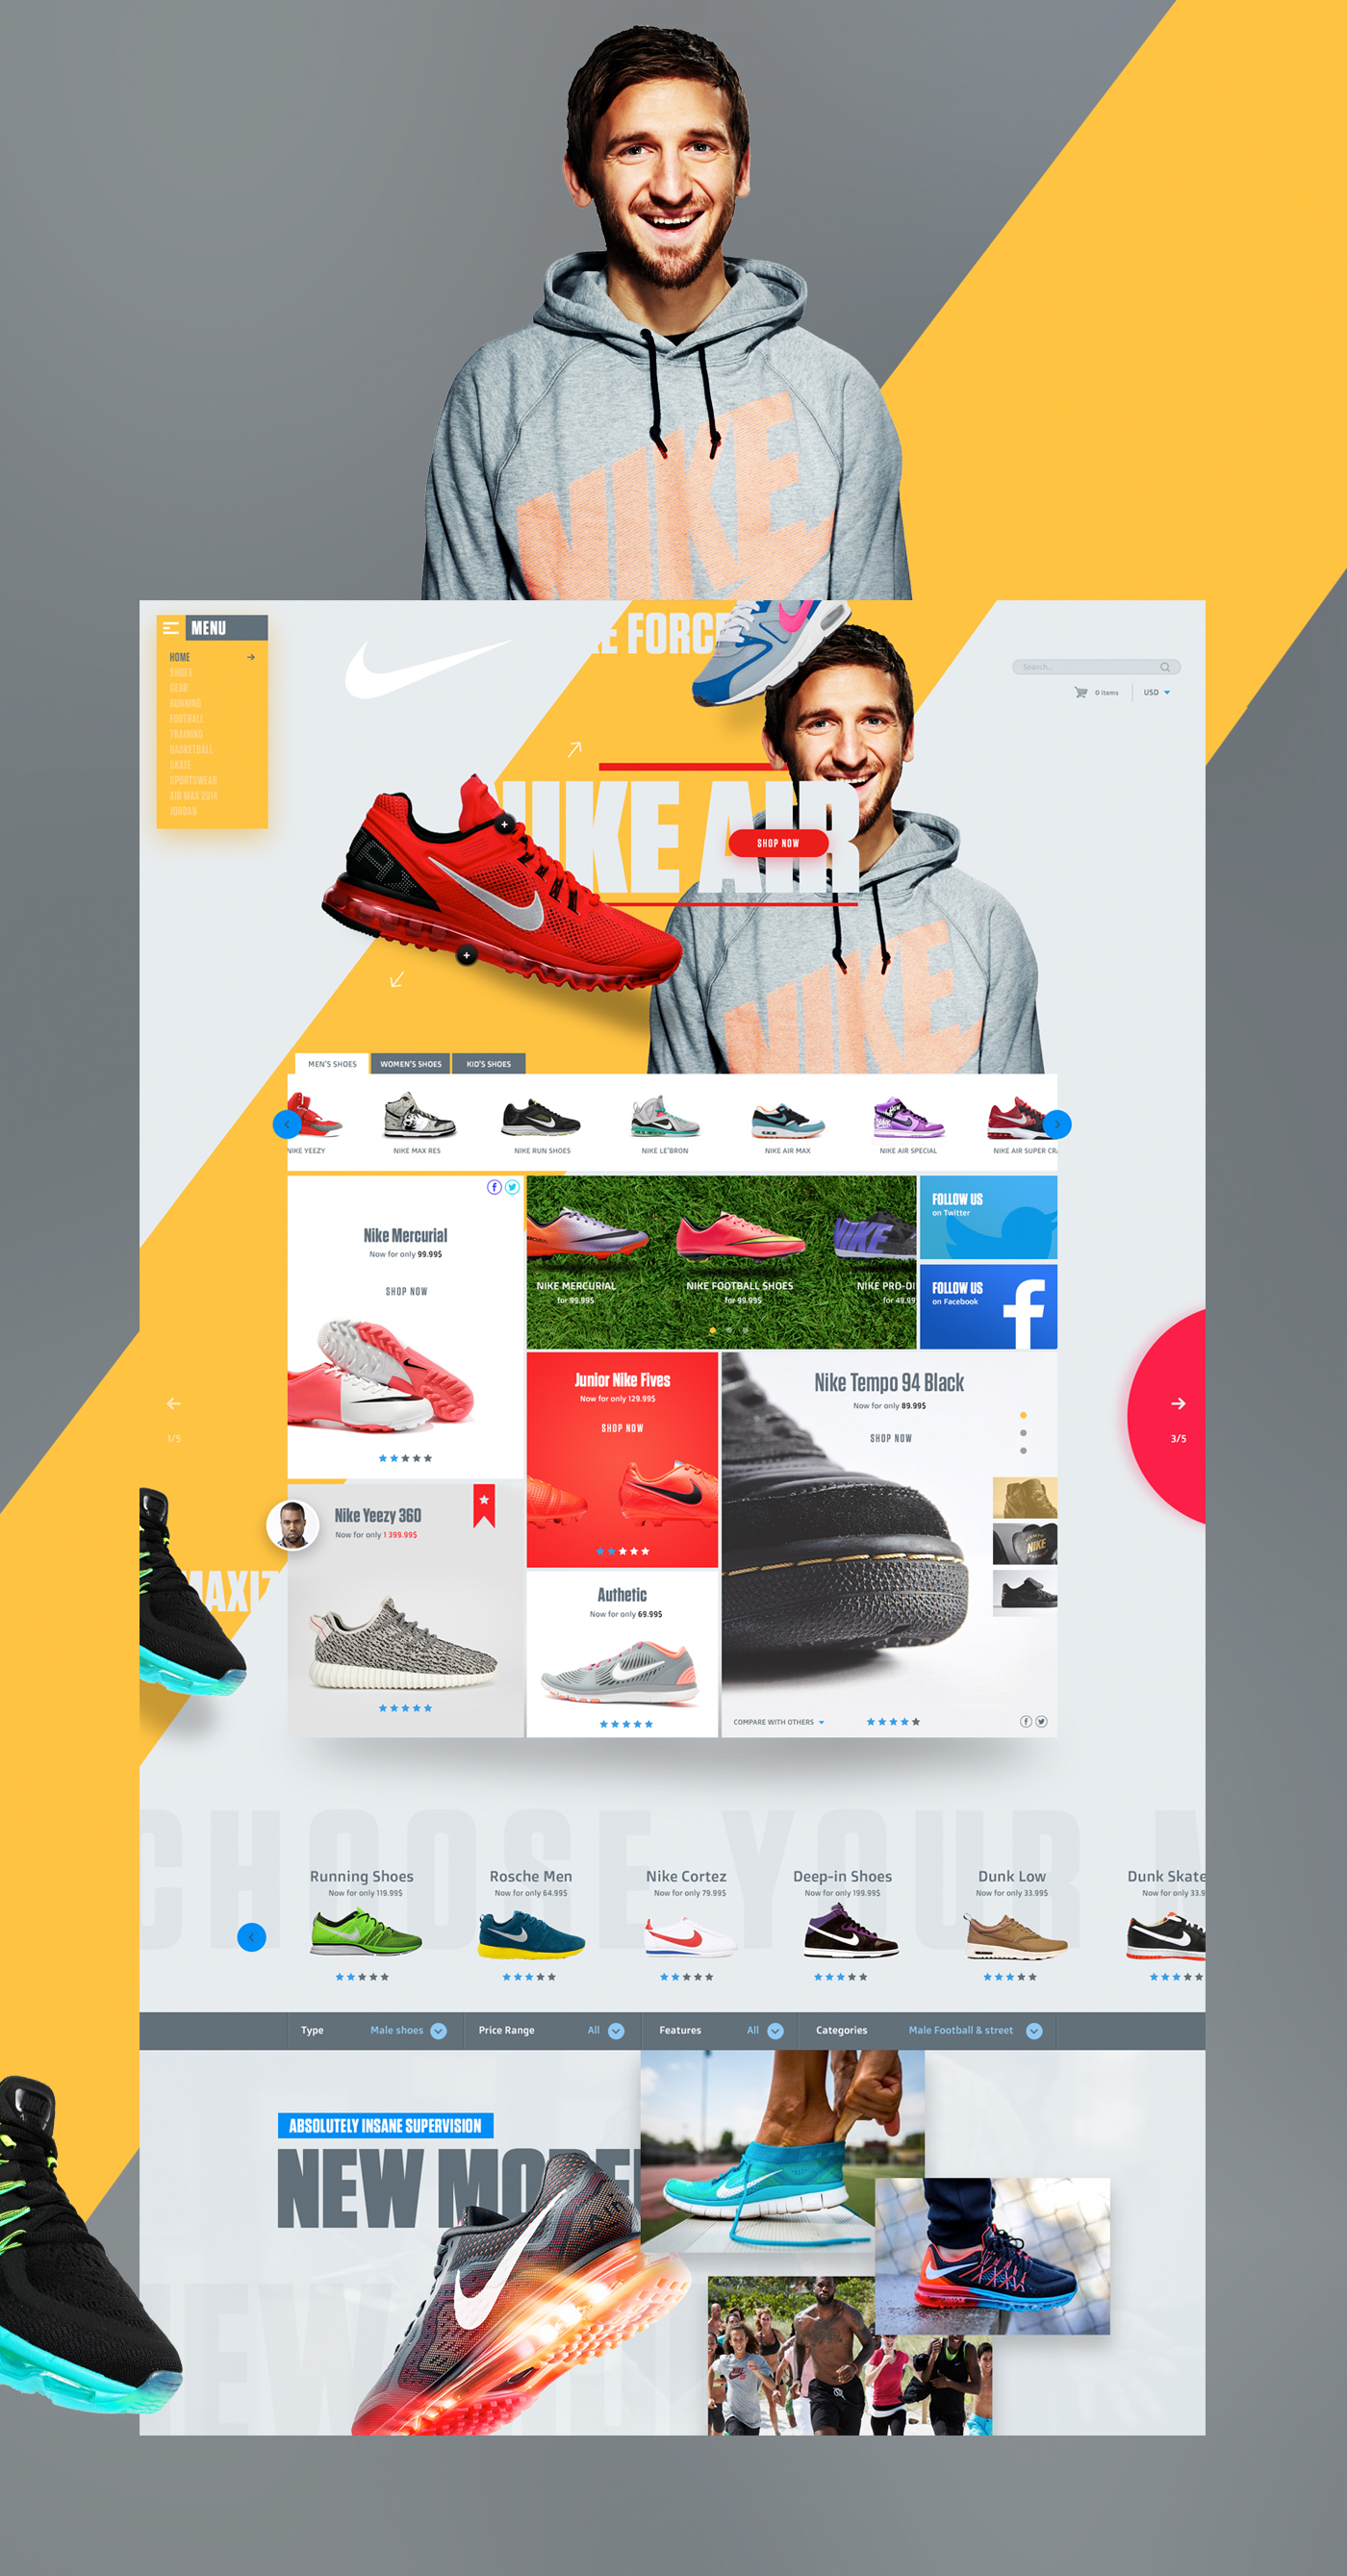 Nike Shop Redesign